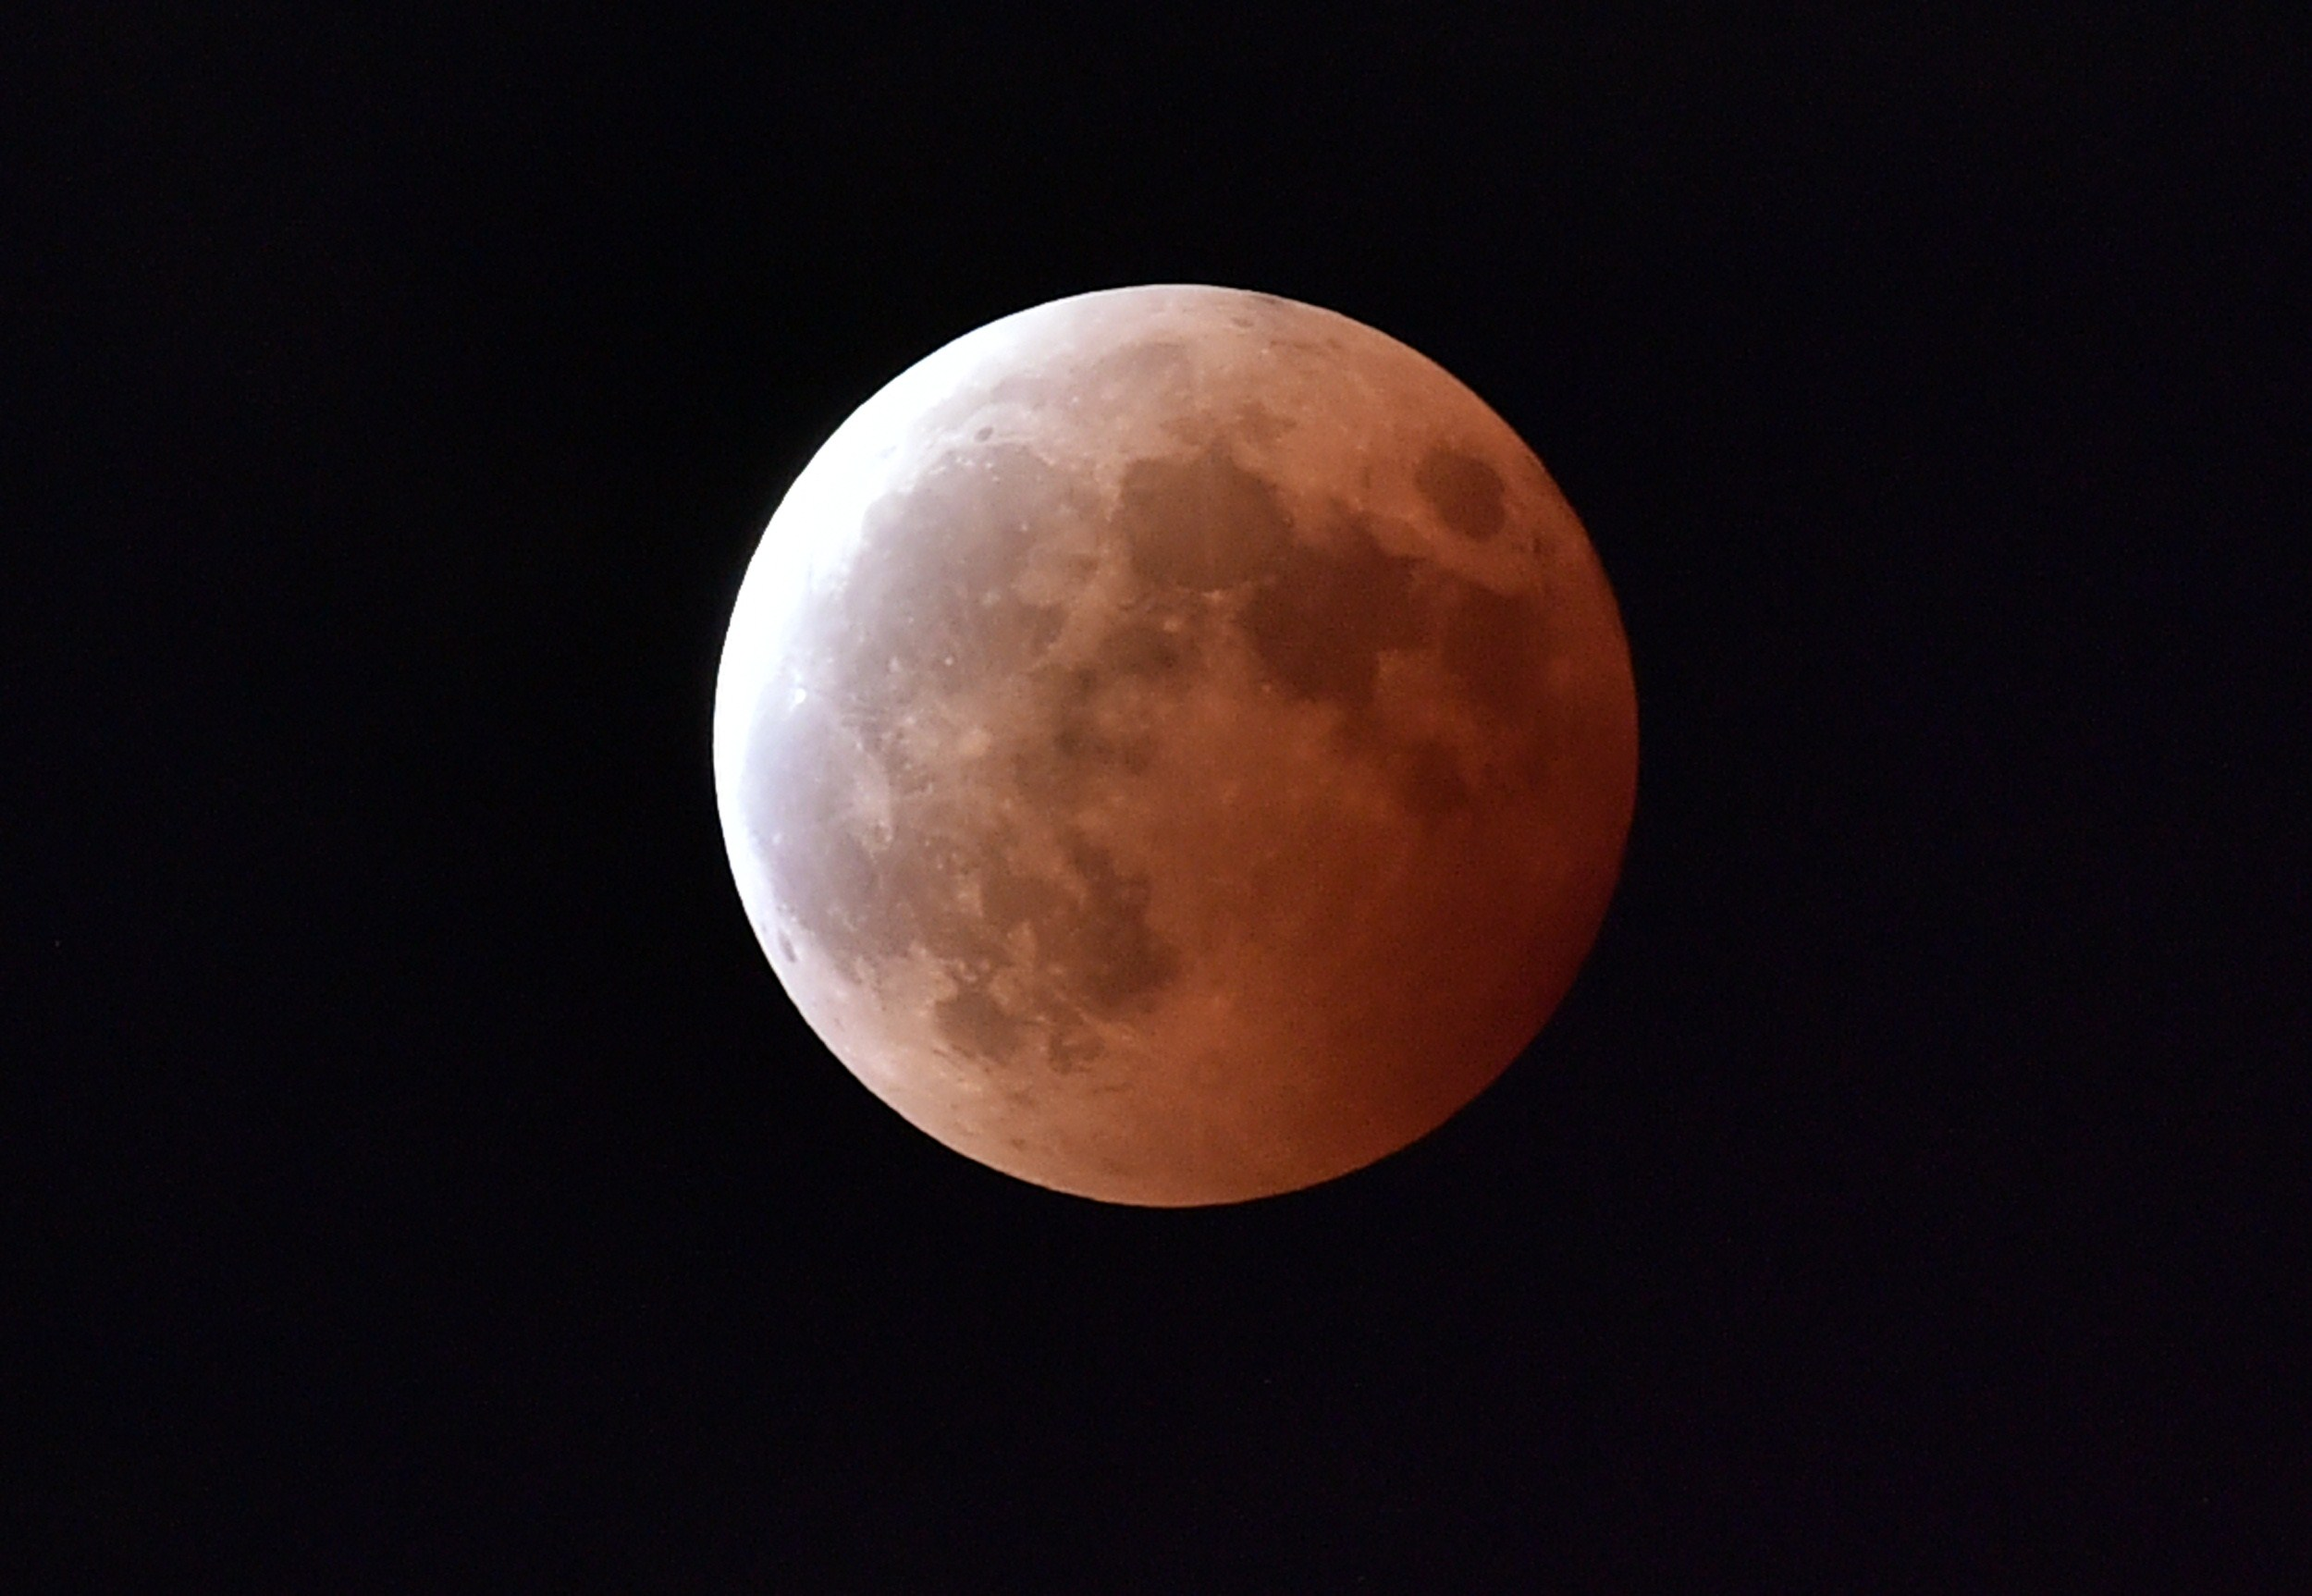 Blood Moon rising: Timelapse of the lunar eclipse